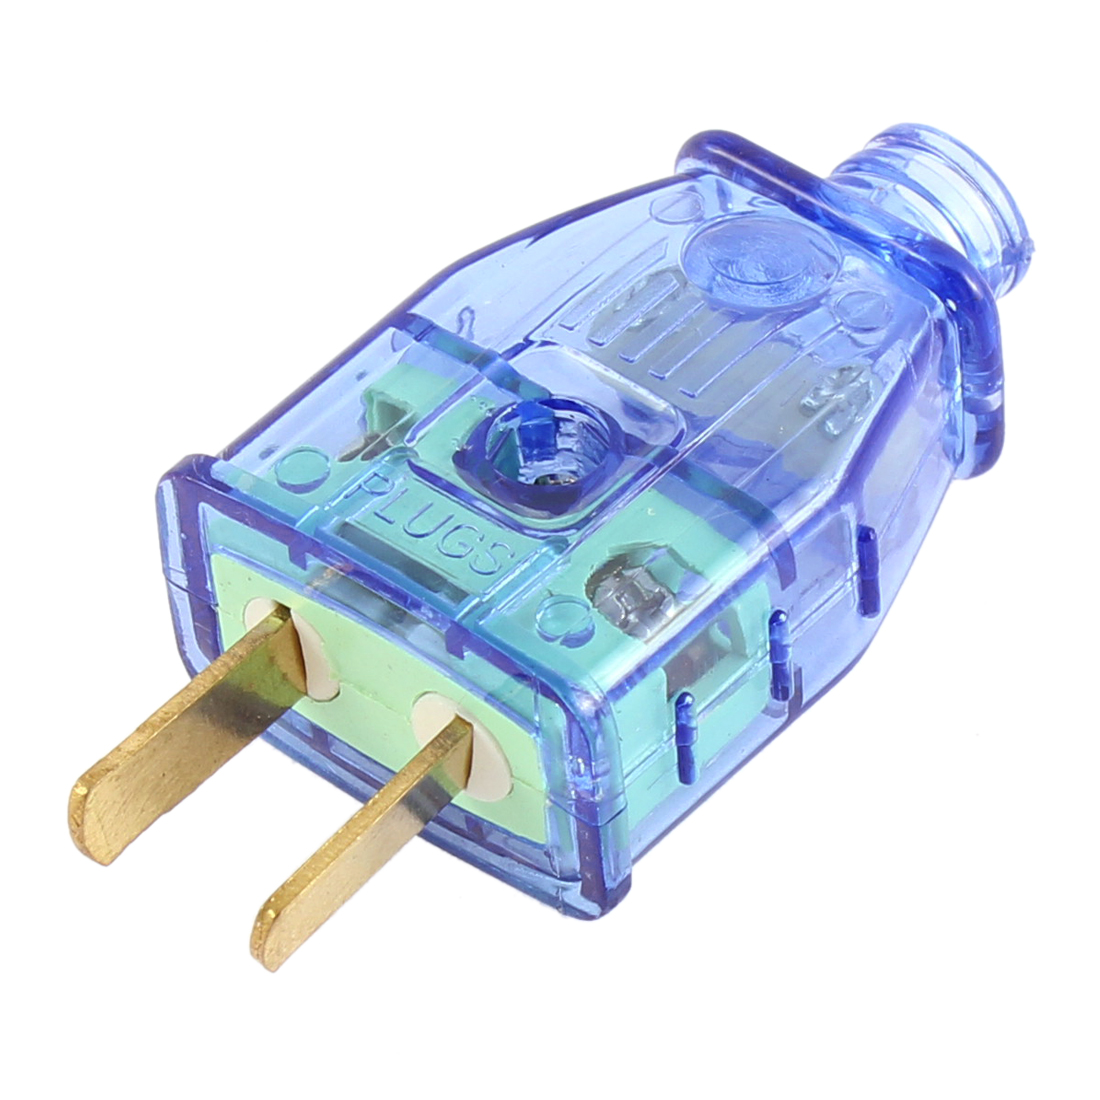 AC 250V 16A AU US 2 Pin Rotation Power Plug Adapter Connector Clear Blue